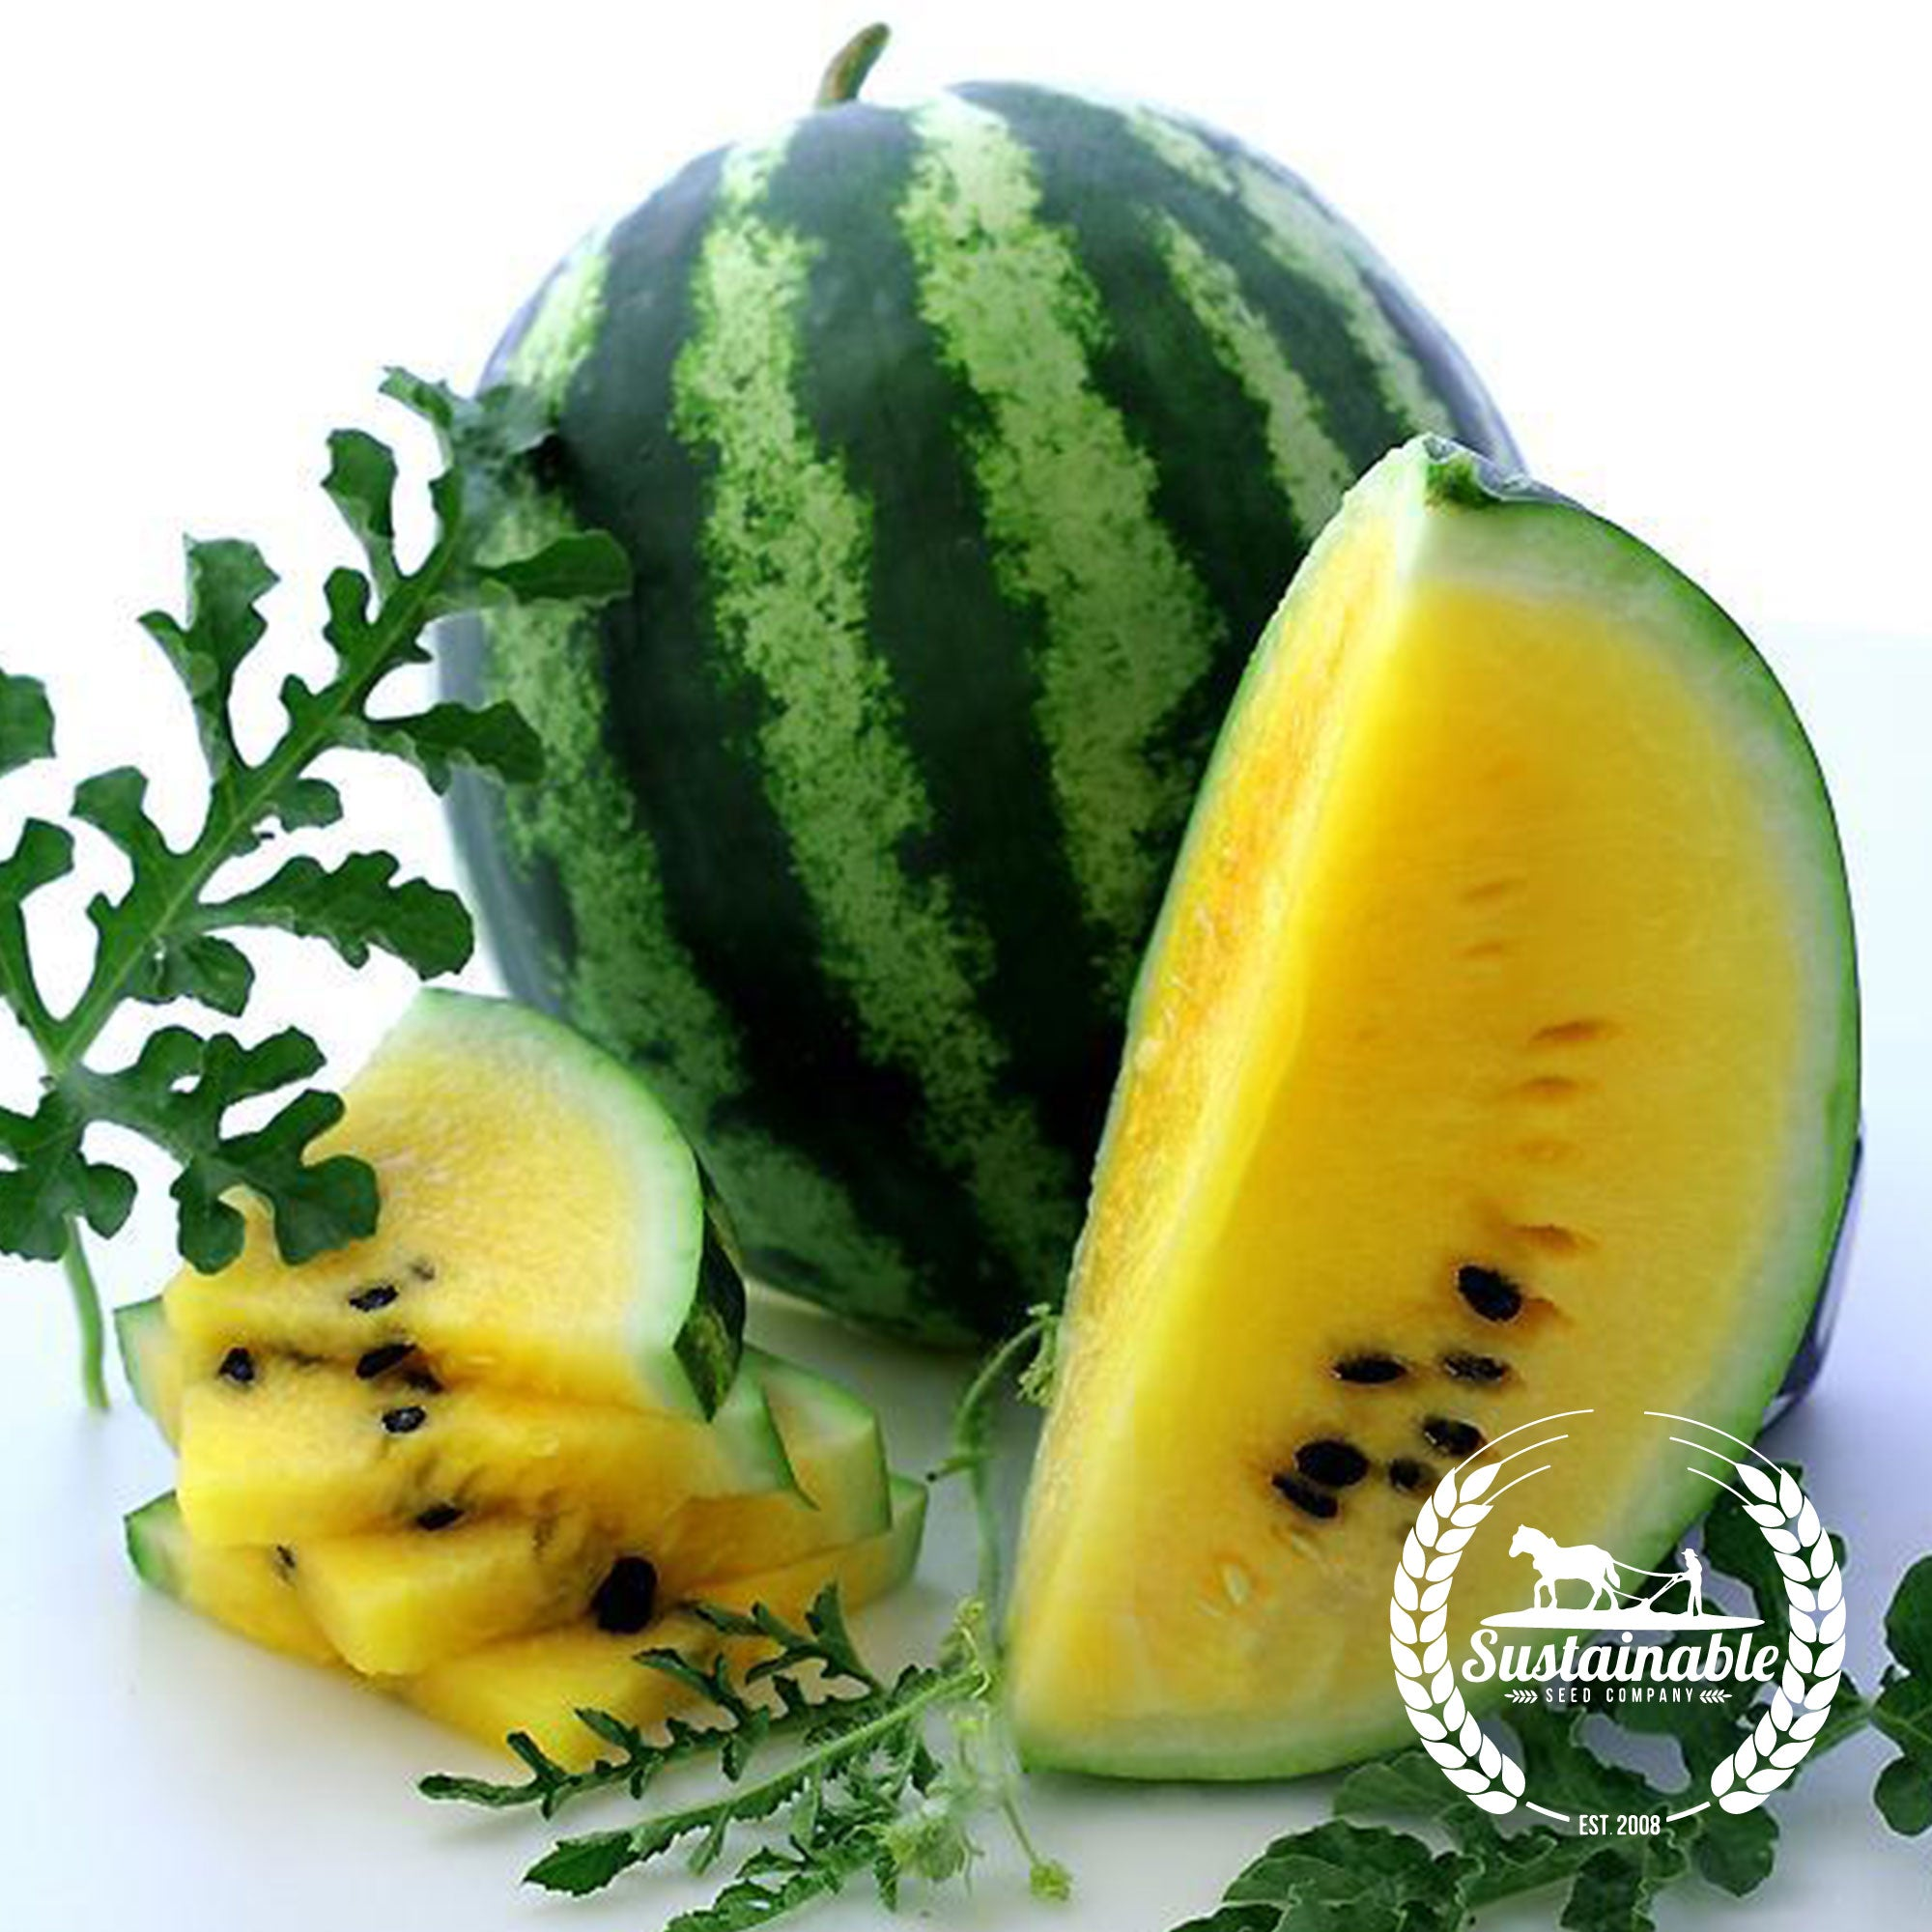 Yellow Petite Watermelon Heirloom Seeds Vegetable Seeds Sustainable Seed Sustainable Seed Company